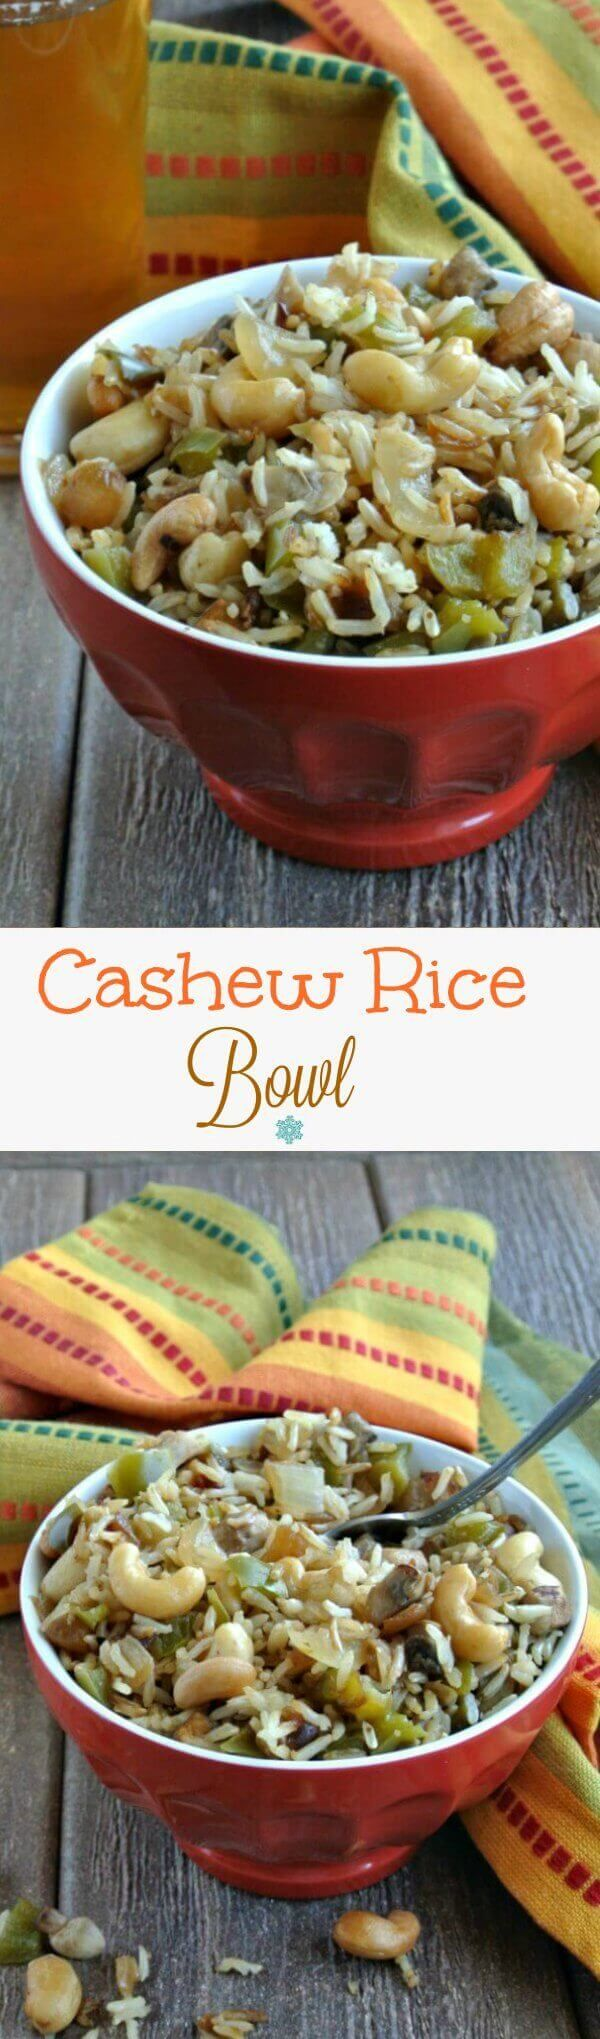 Cashew Rice Bowl has an Asian Flare that satisfies your cravings. A nice bowl of comfort food is just right for family and friends.